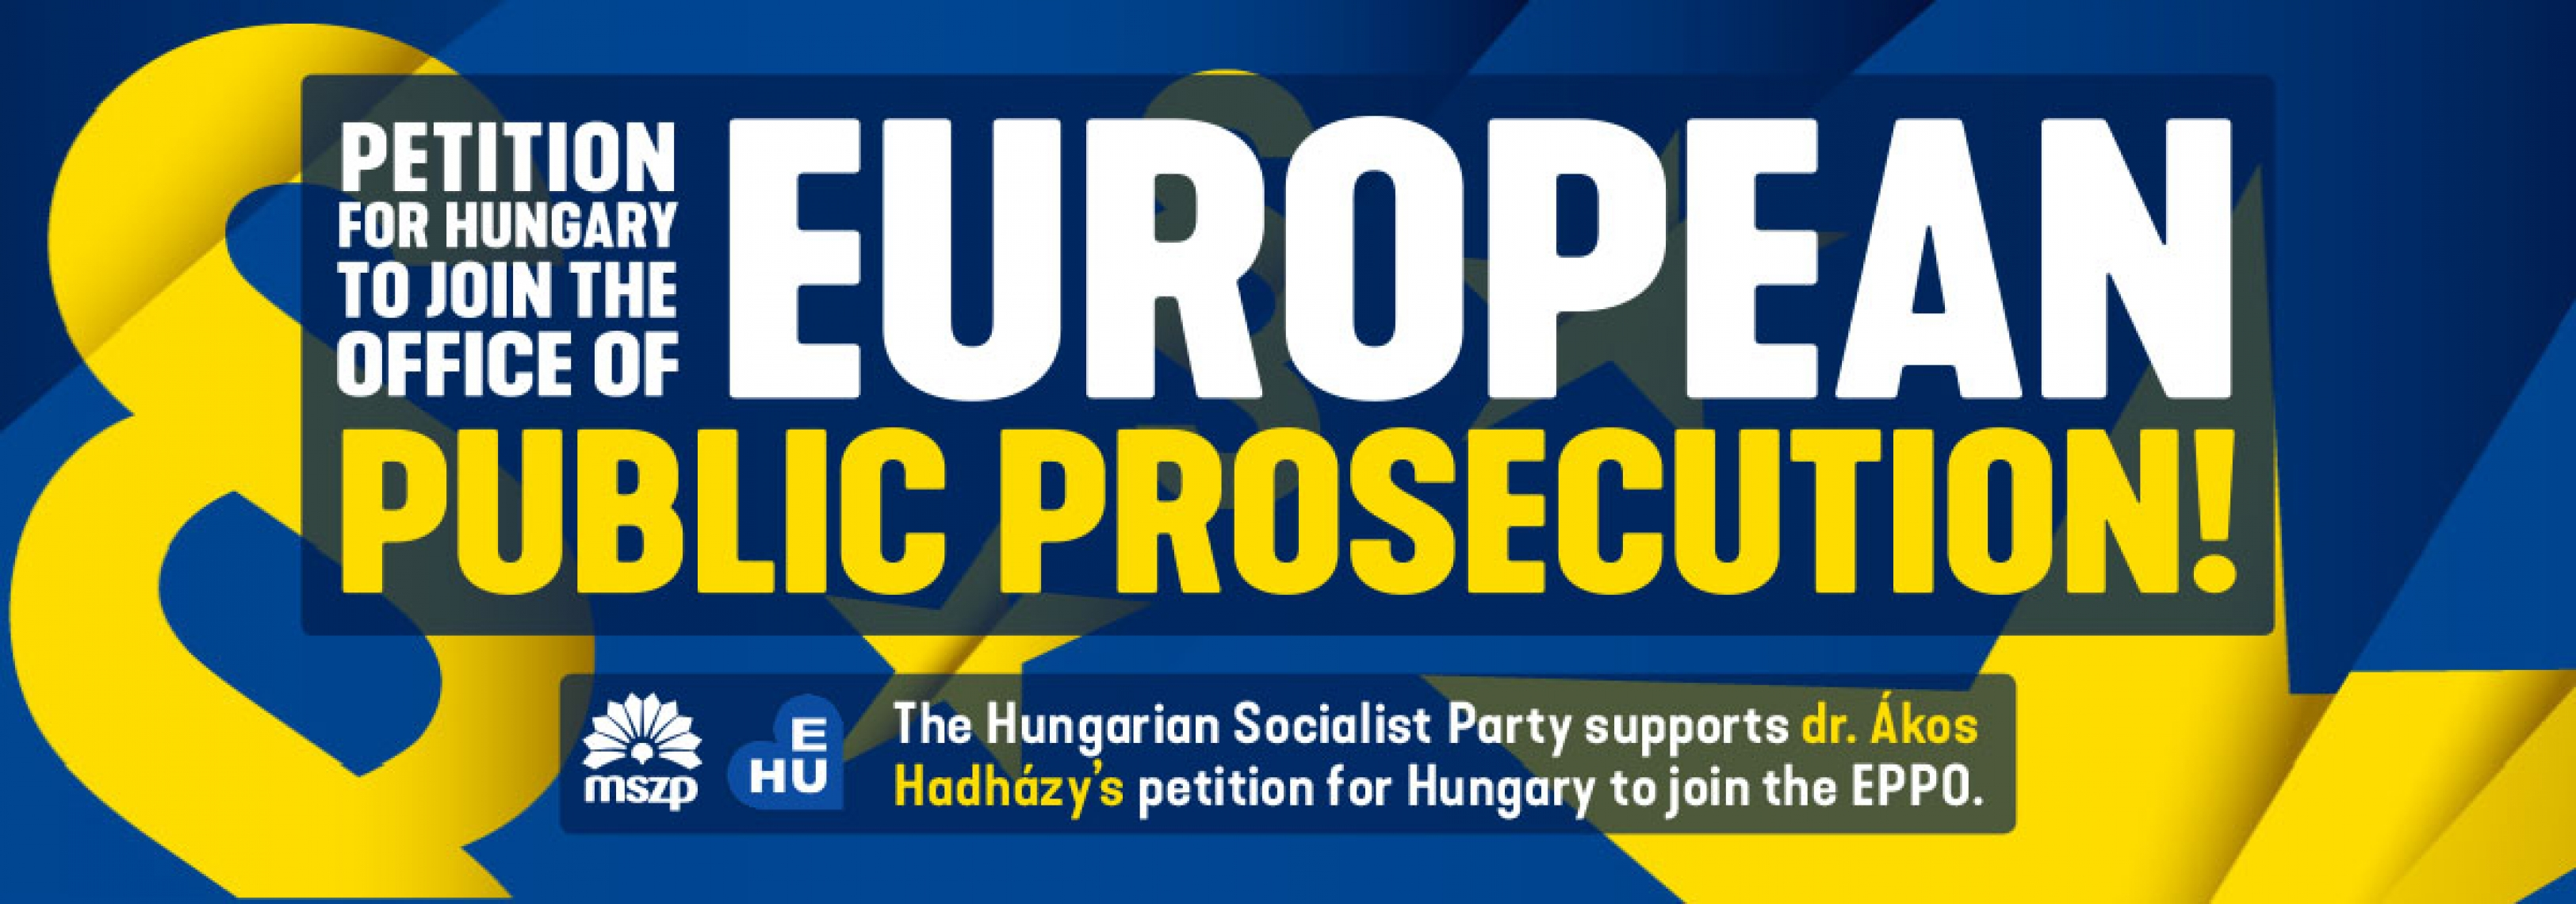 Let's join the European Public Prosecutor's Office! II